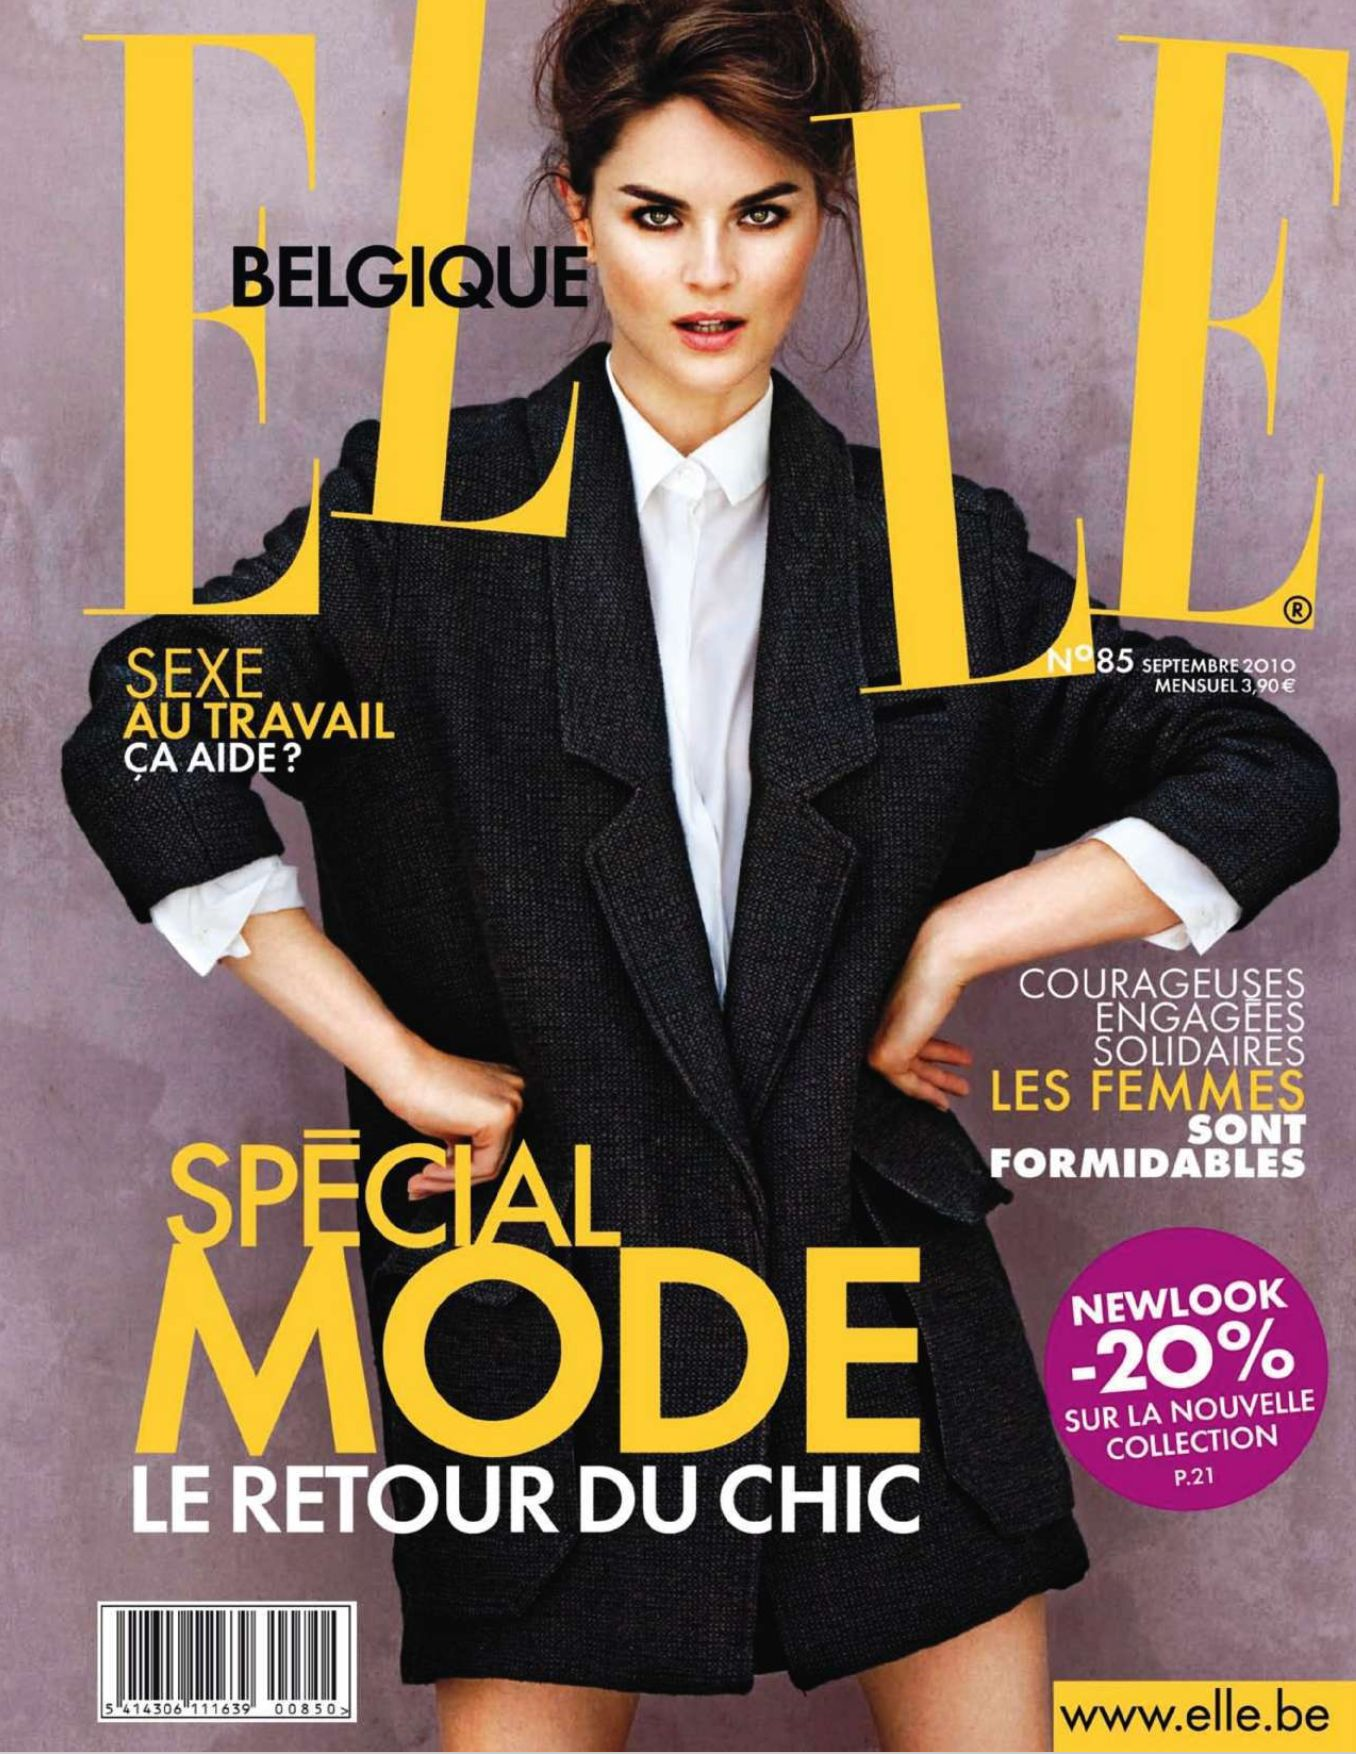 elle belgique magazine septembre 2010 sp cial mode le retour du chic my book is open. Black Bedroom Furniture Sets. Home Design Ideas